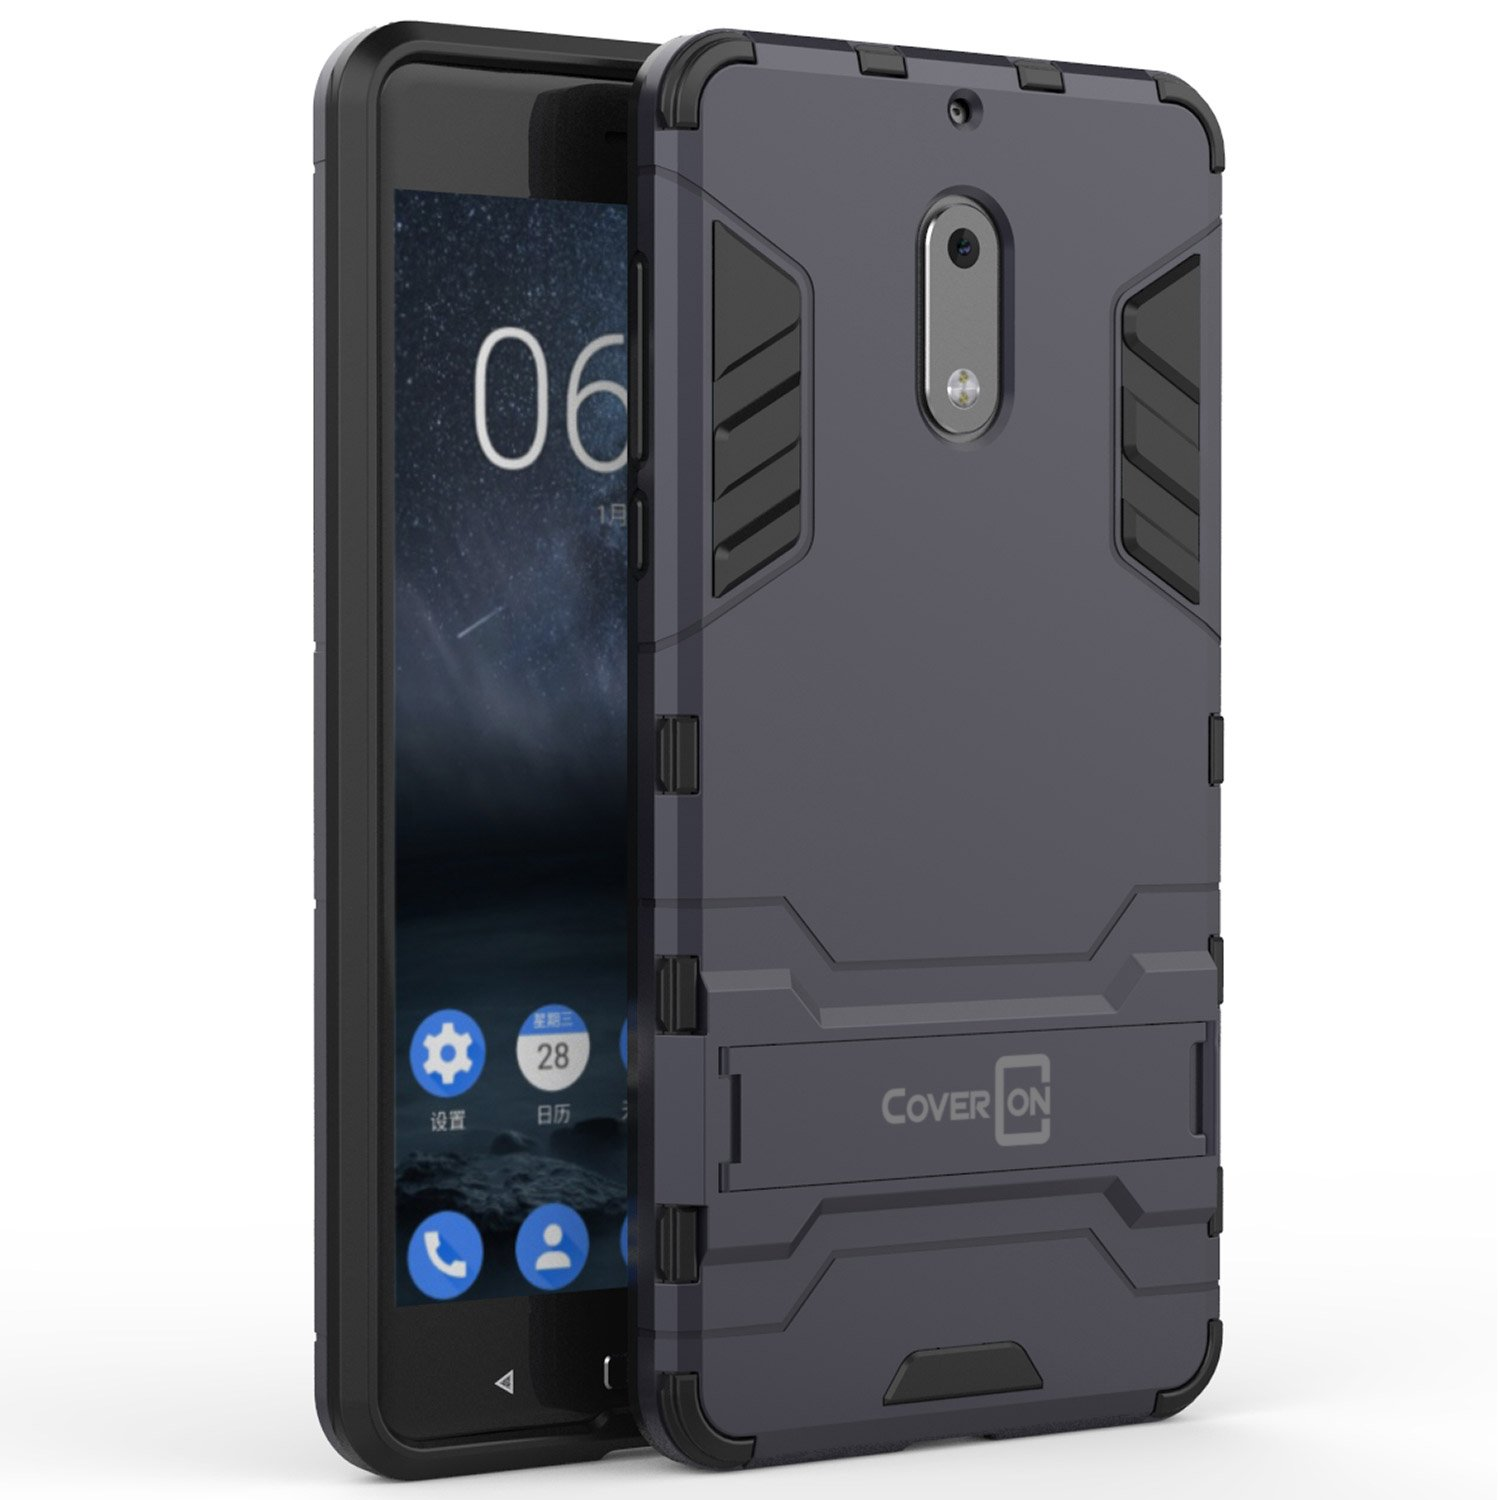 new style e432c d8cdf Nokia 6 Case, CoverON [Shadow Armor Series] Hard Slim Hybrid Kickstand  Phone Cover Case for Nokia 6 - Navy/Black